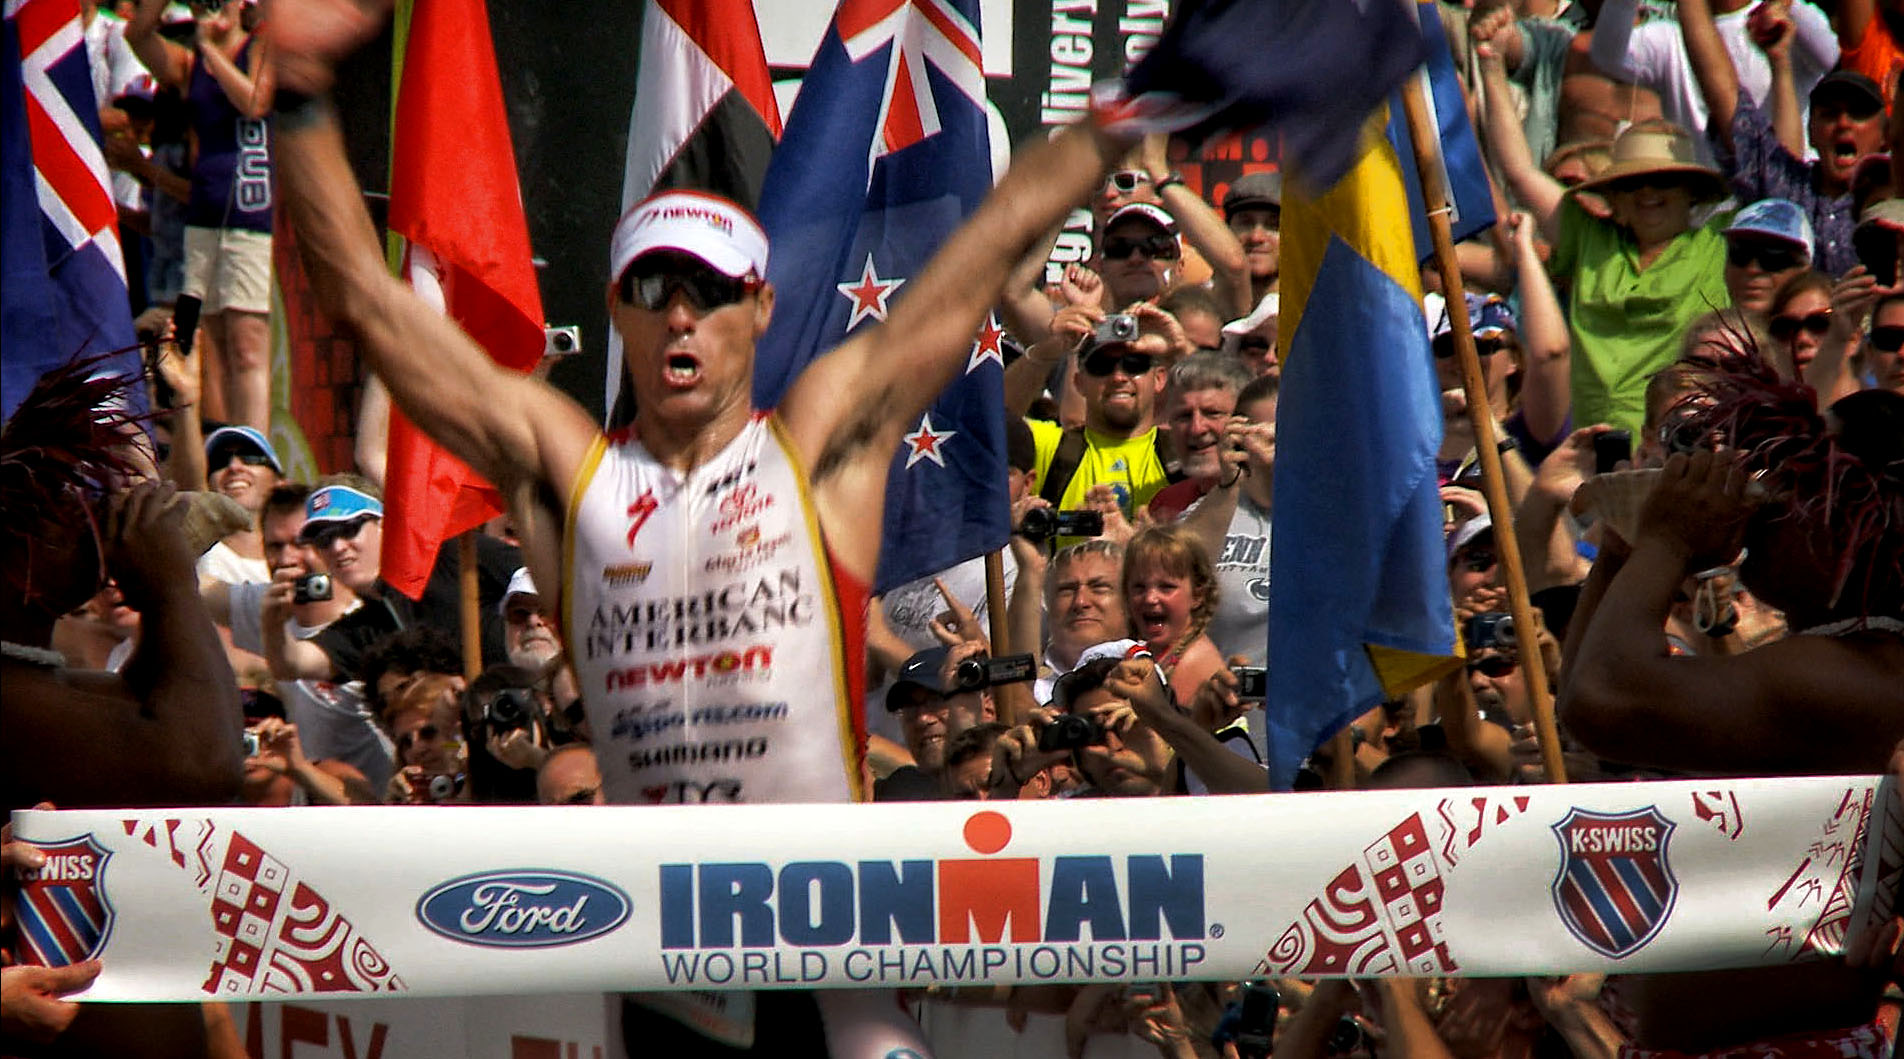 Craig Alexander wins the Ironman World Championship and sets a new course record in 8 hours, 03 minutes, 56 seconds. The previous course record was 8:04:08 was set in 1996 by Belguim's Luc Van Lierde.